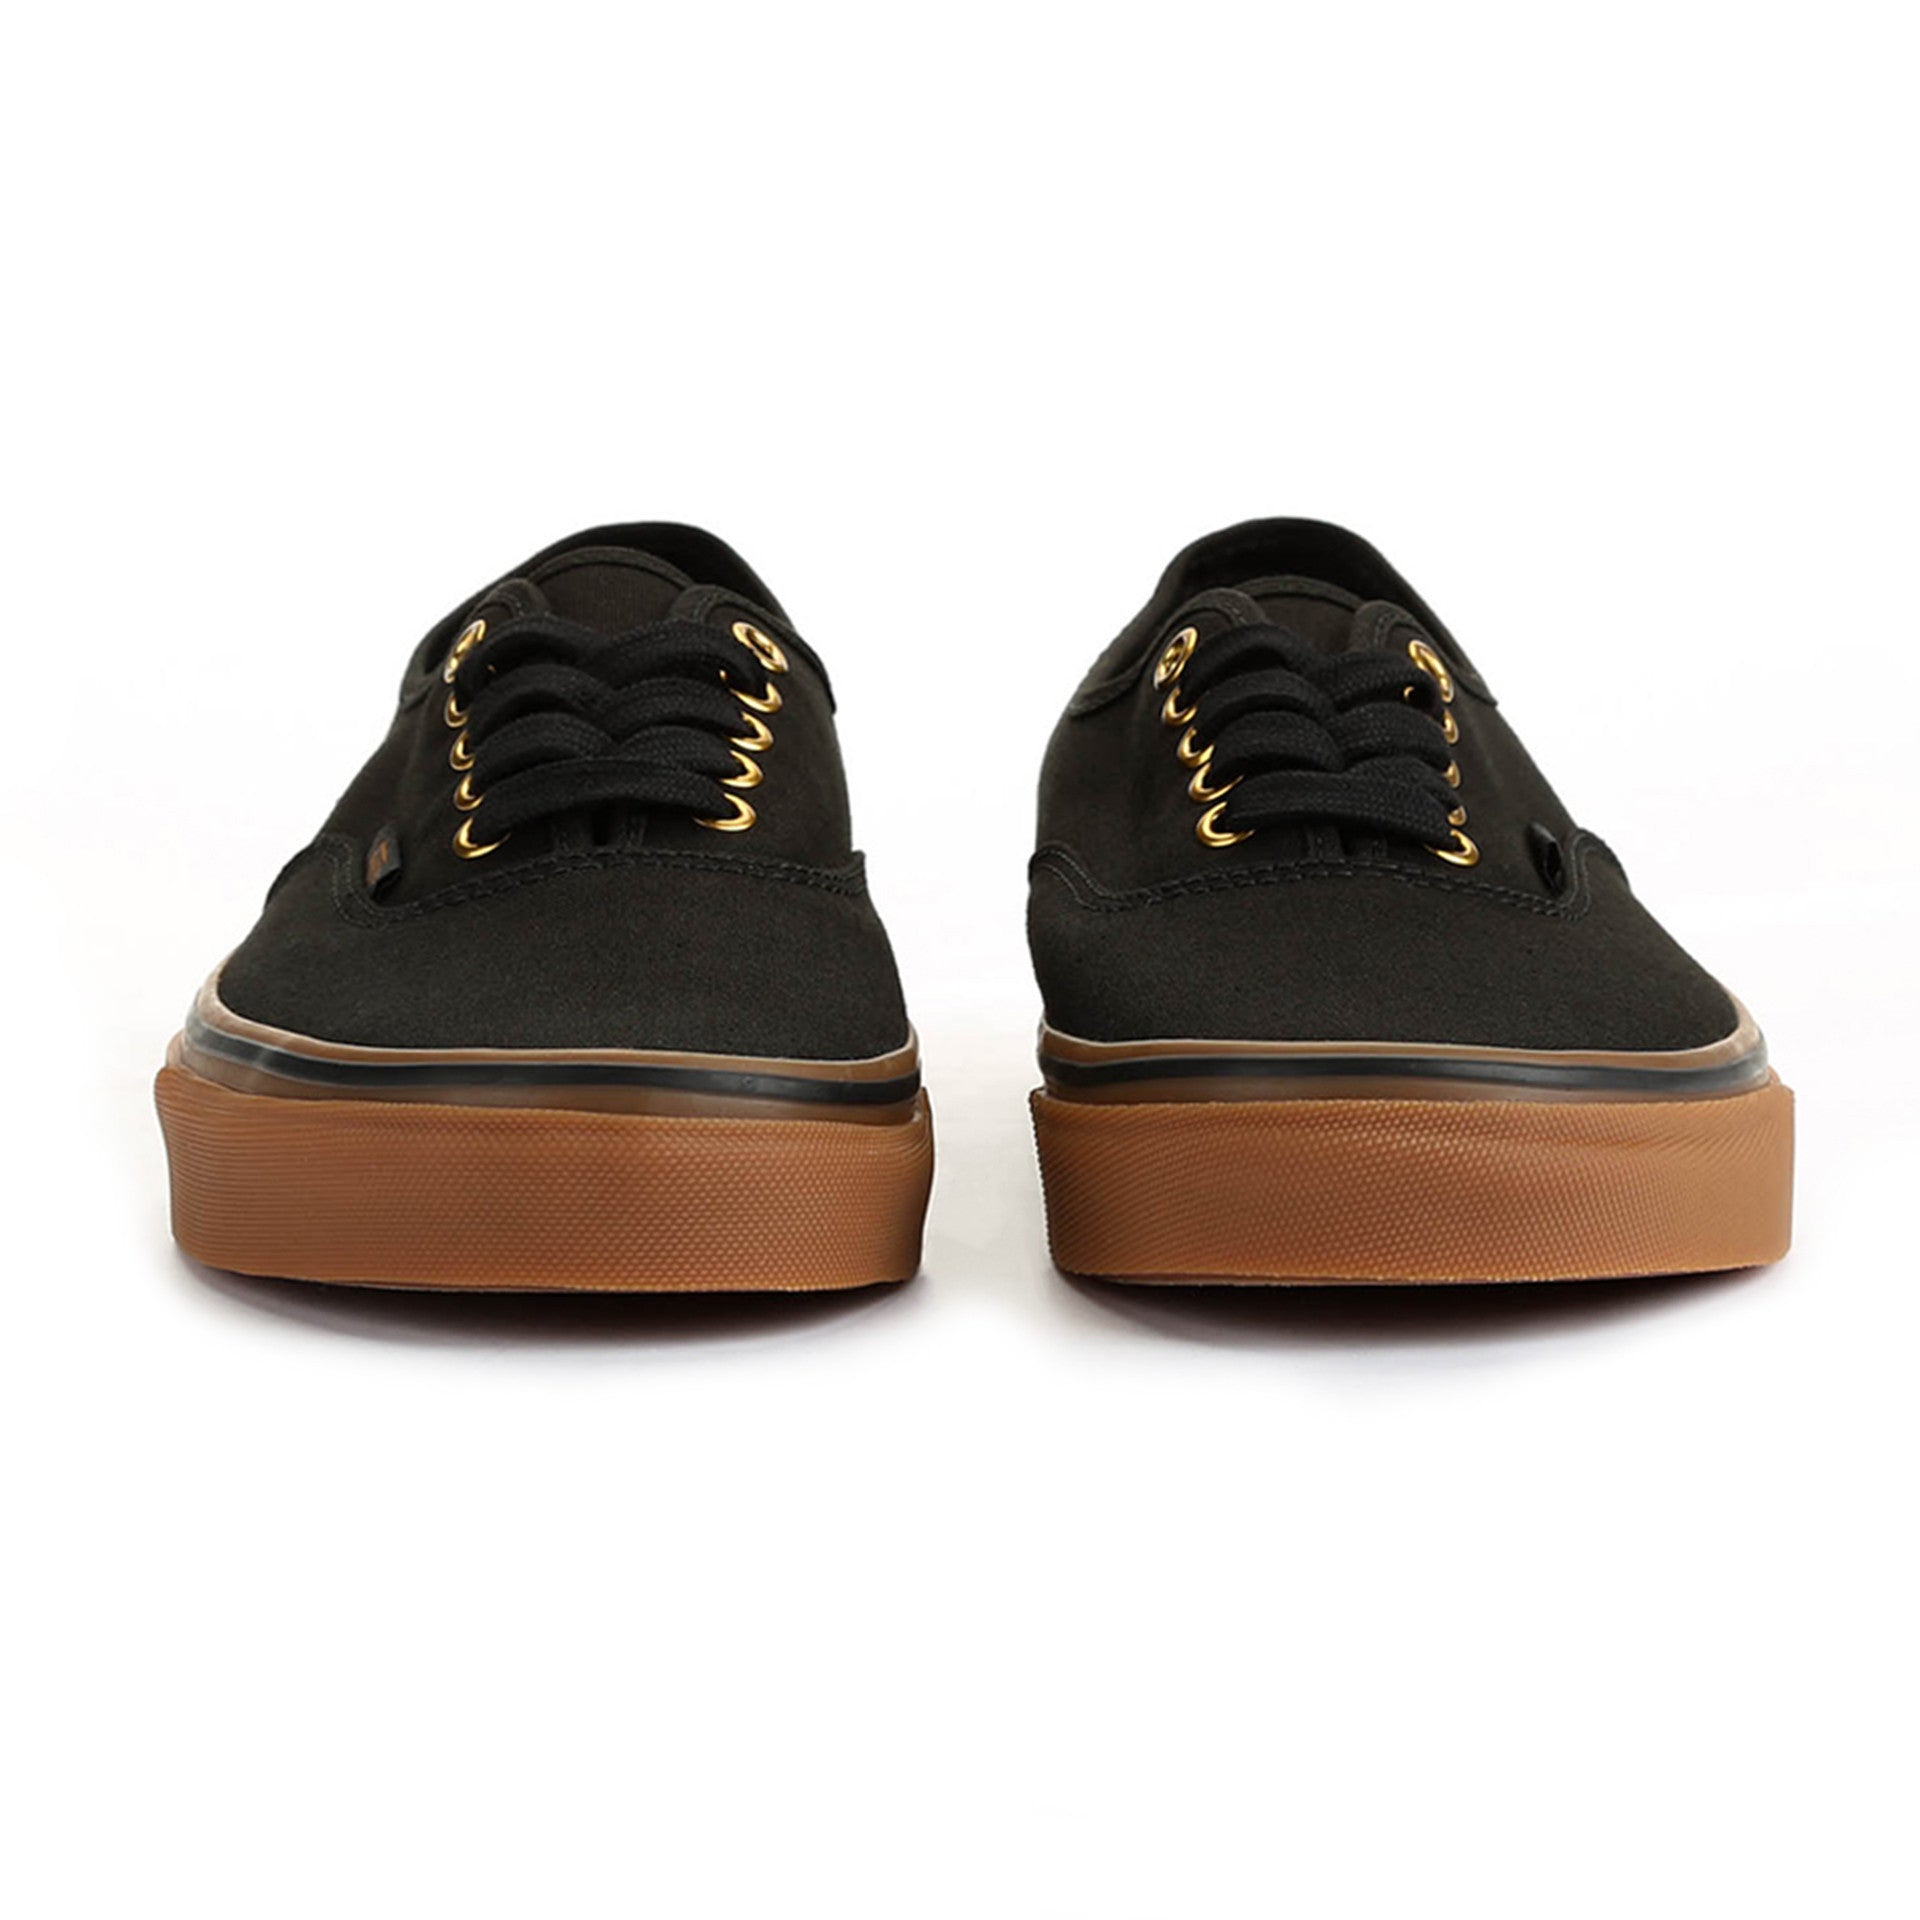 Vans Classic Authentic - Black Rubber - New Star 7338ea23c2